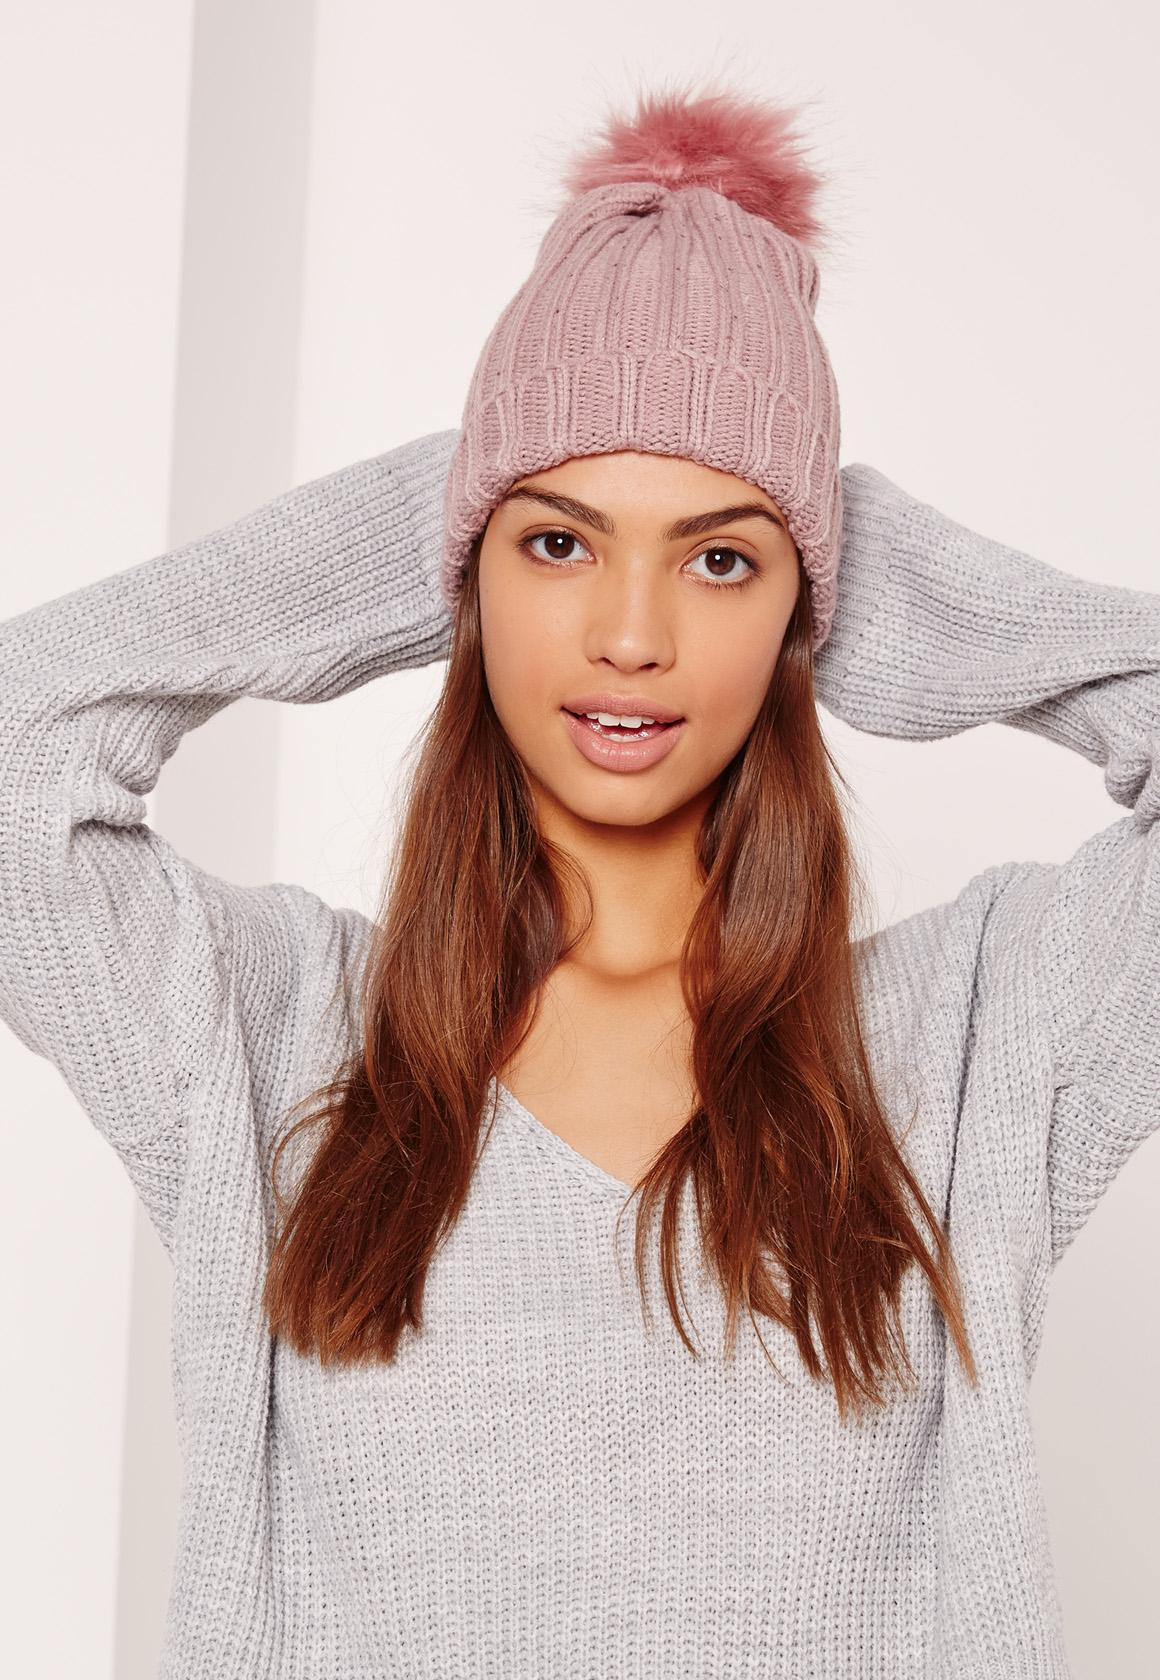 00e2957083e Lyst - Missguided Pink Metallic Knit Faux Fur Pom Pom Beanie in Pink